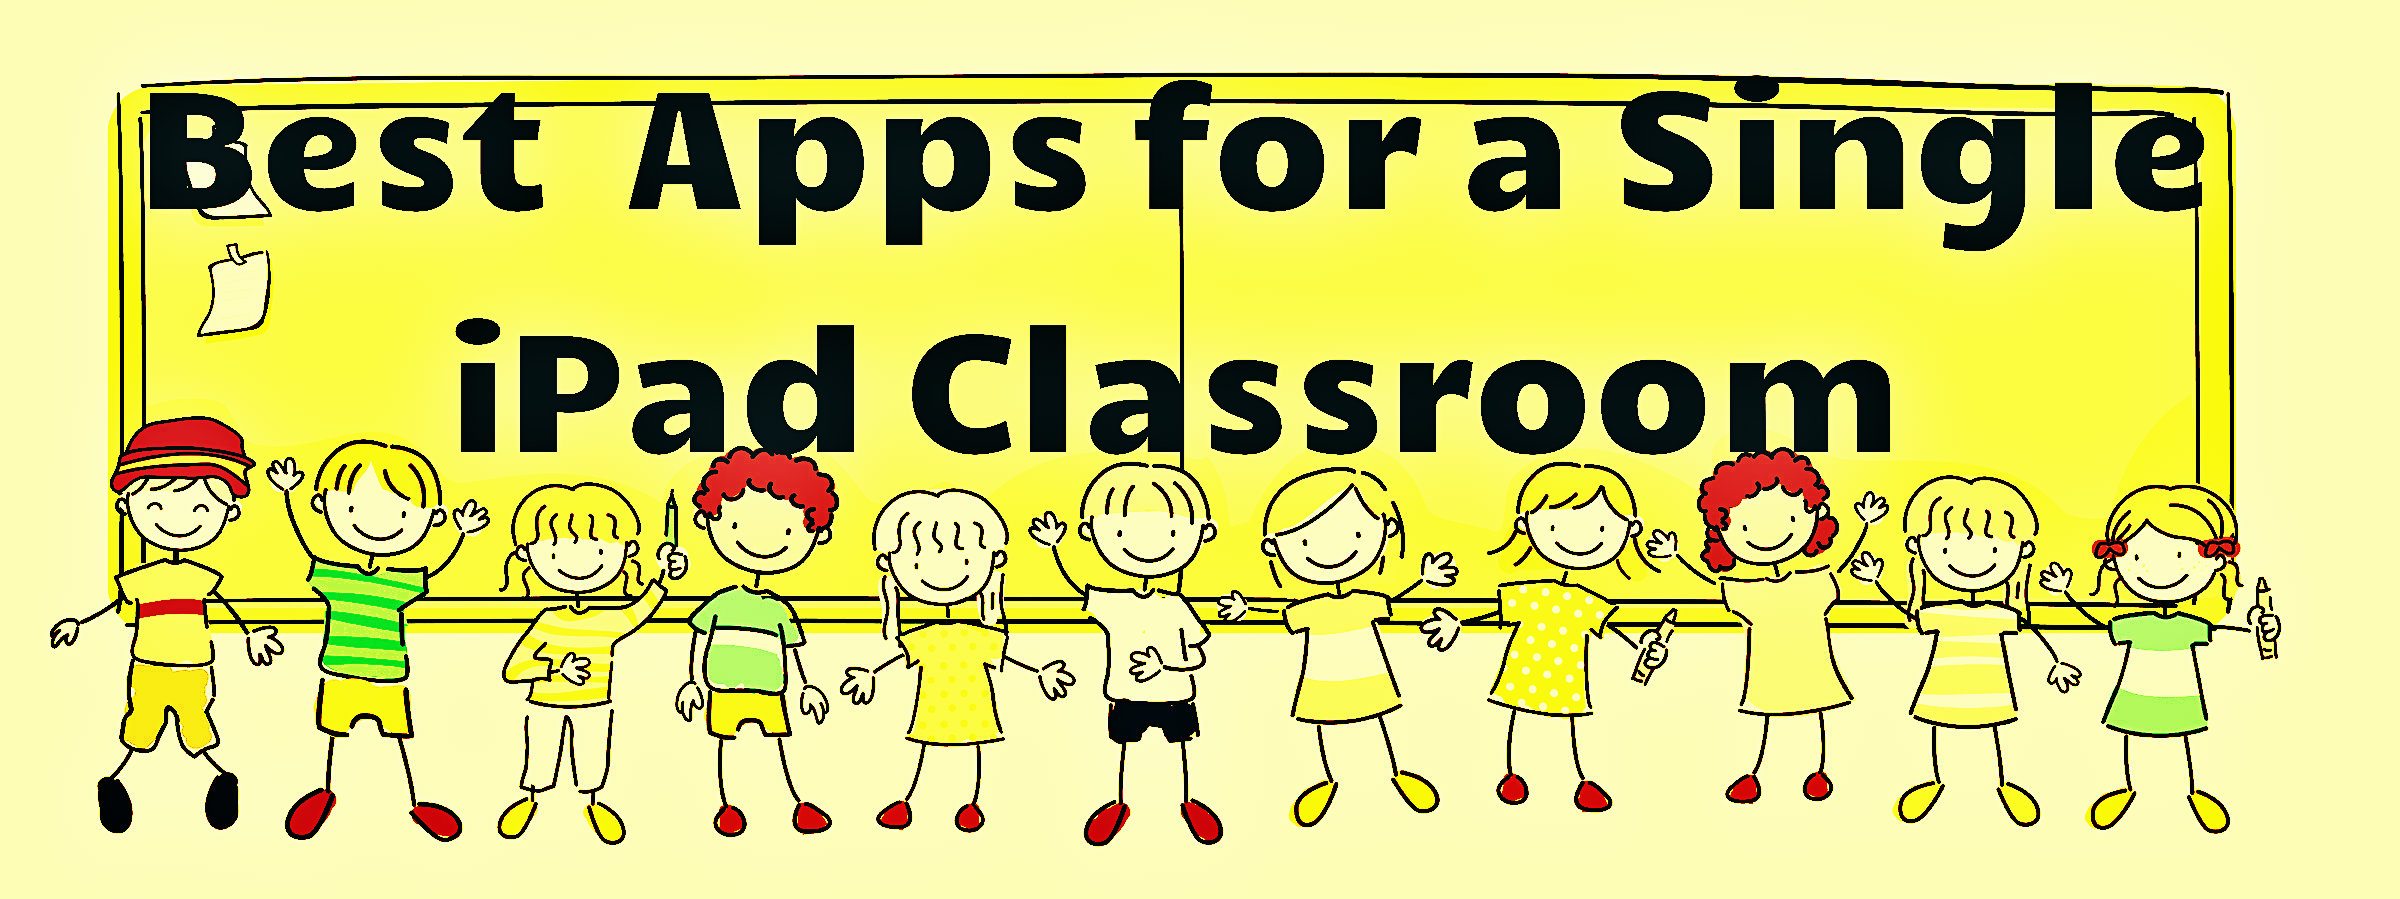 Apps for a single ipad classroom